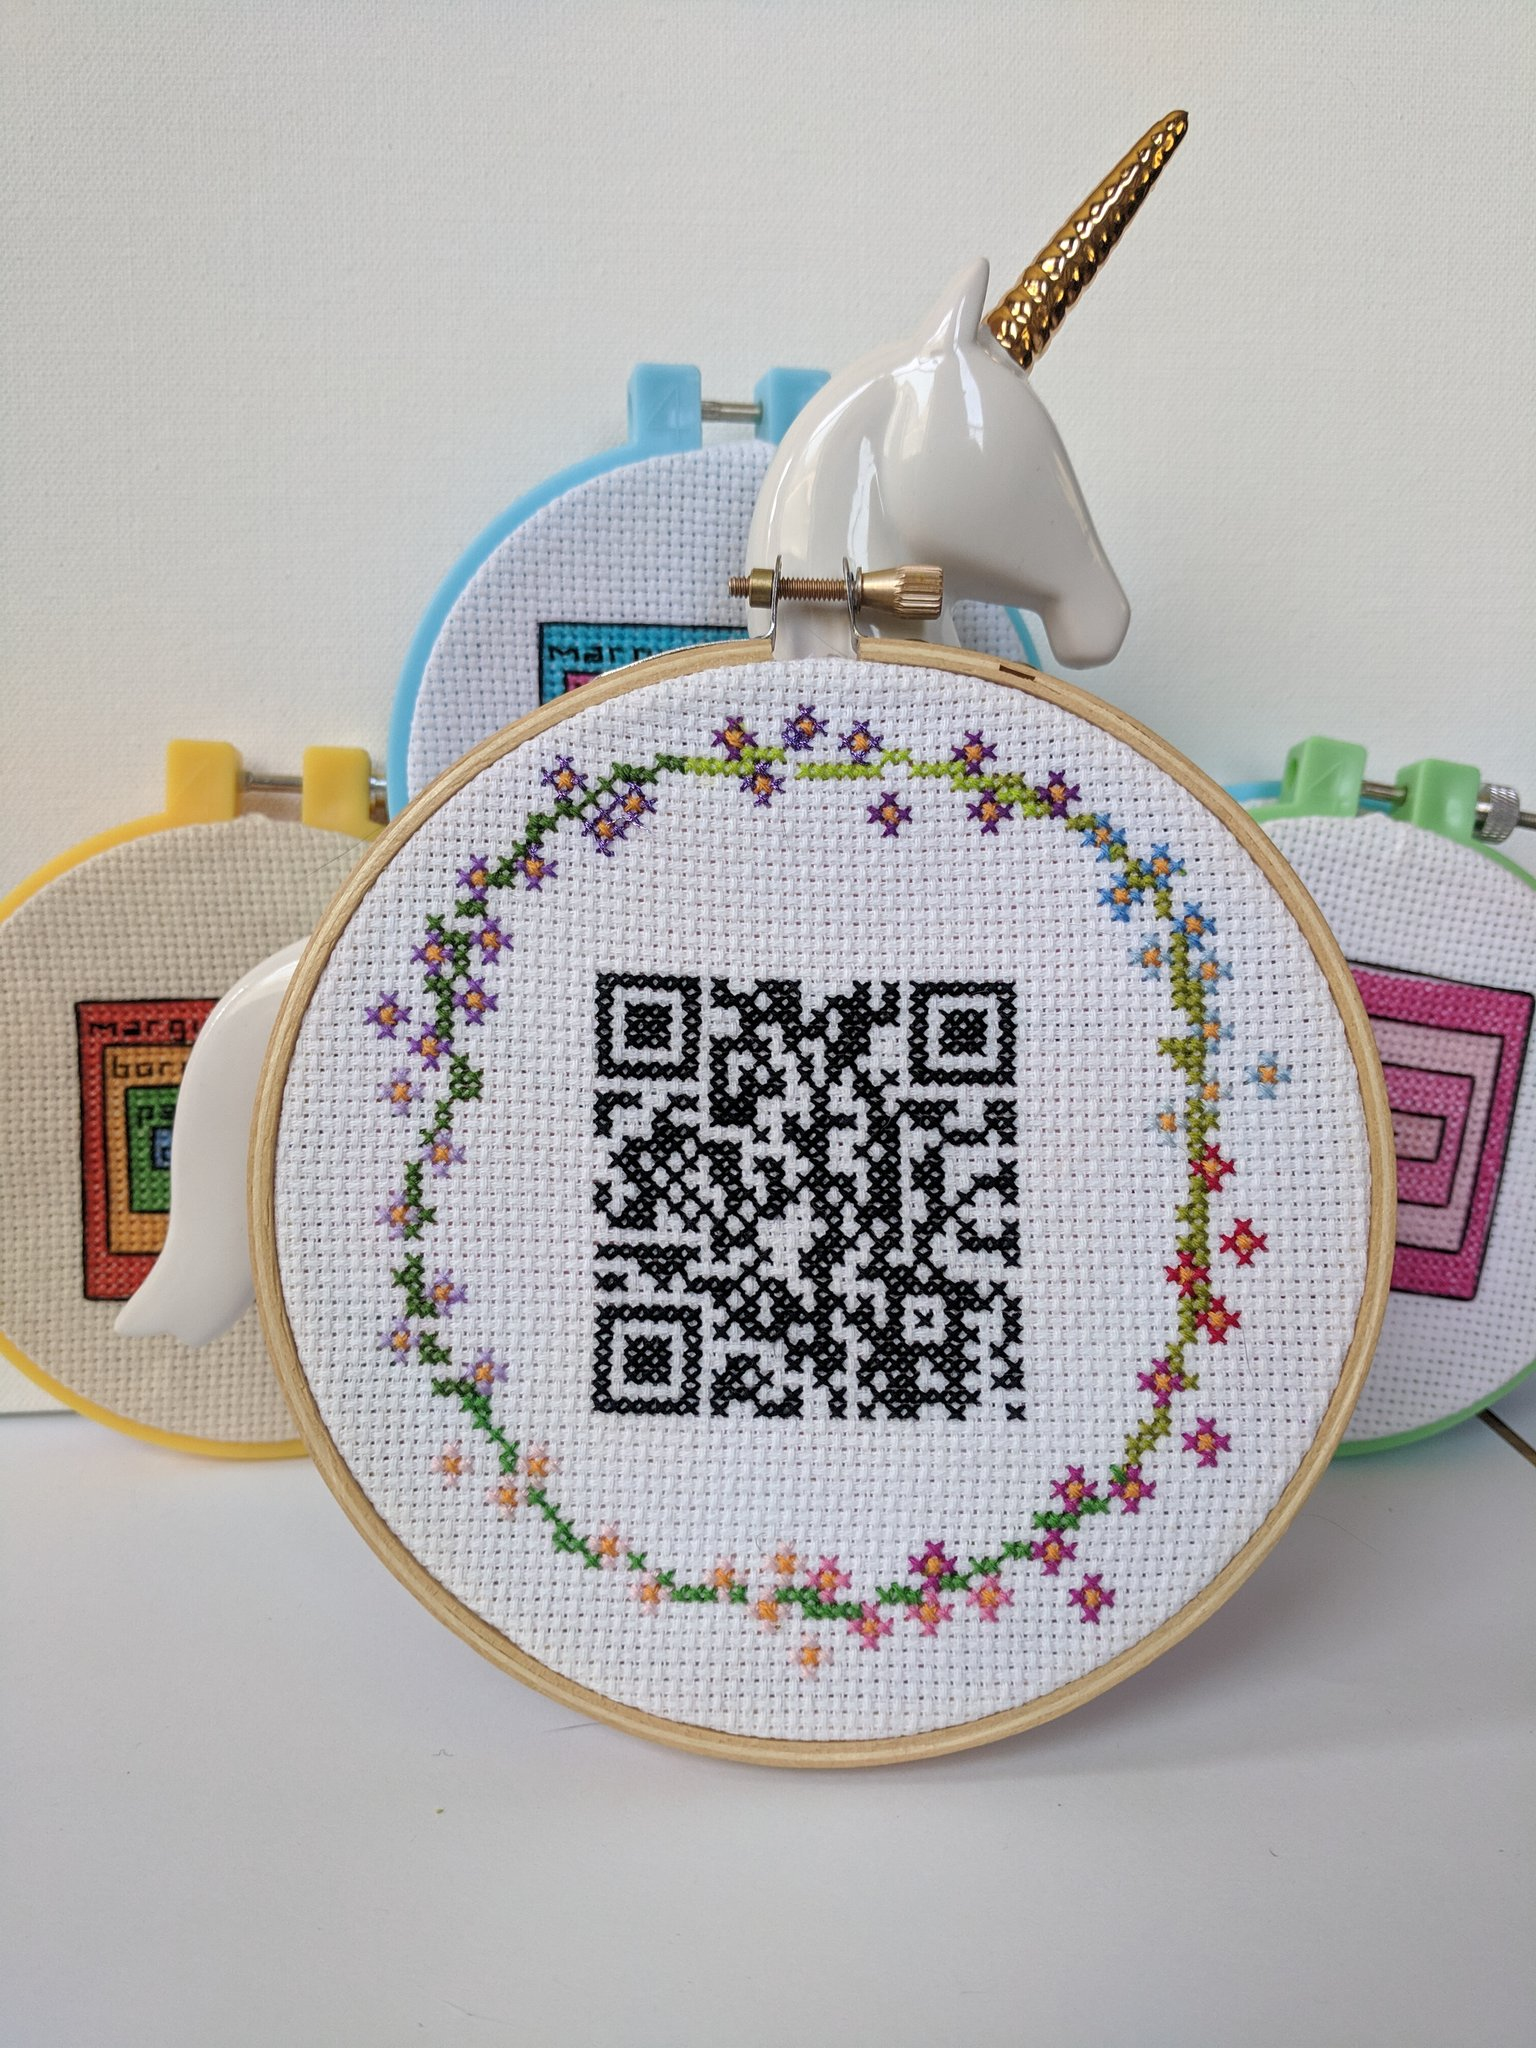 qr cross stitch in hoop, complete with spokesunicorn